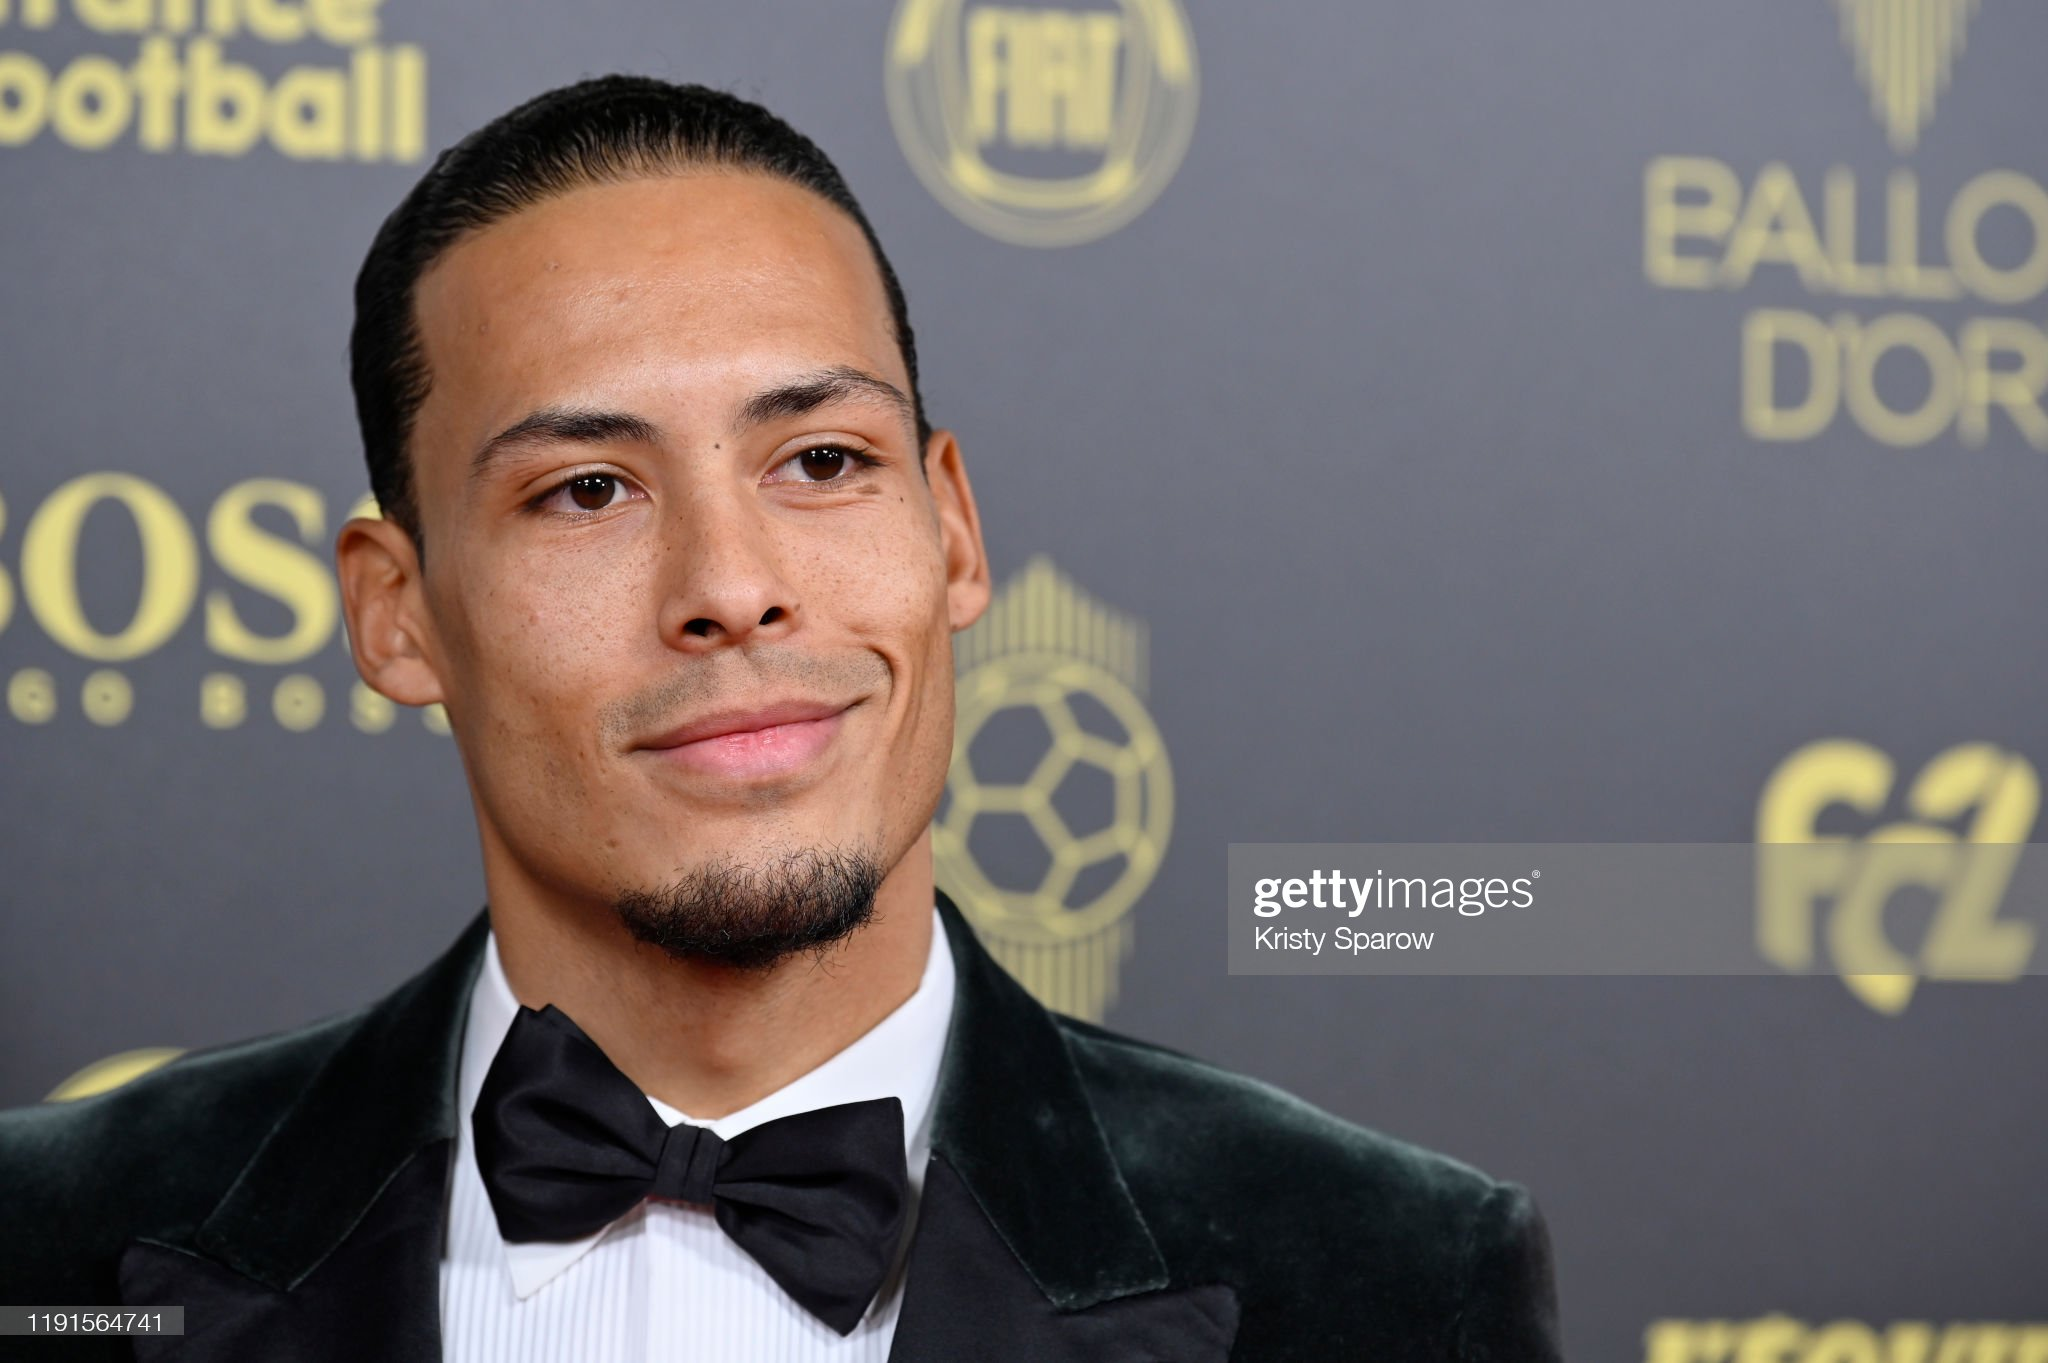 BALLON D'OR *RÉCOMPENSES DU FOOT* à partir de 2019 Virgil-van-dijk-poses-on-the-red-carpet-during-the-ballon-dor-at-du-picture-id1191564741?s=2048x2048